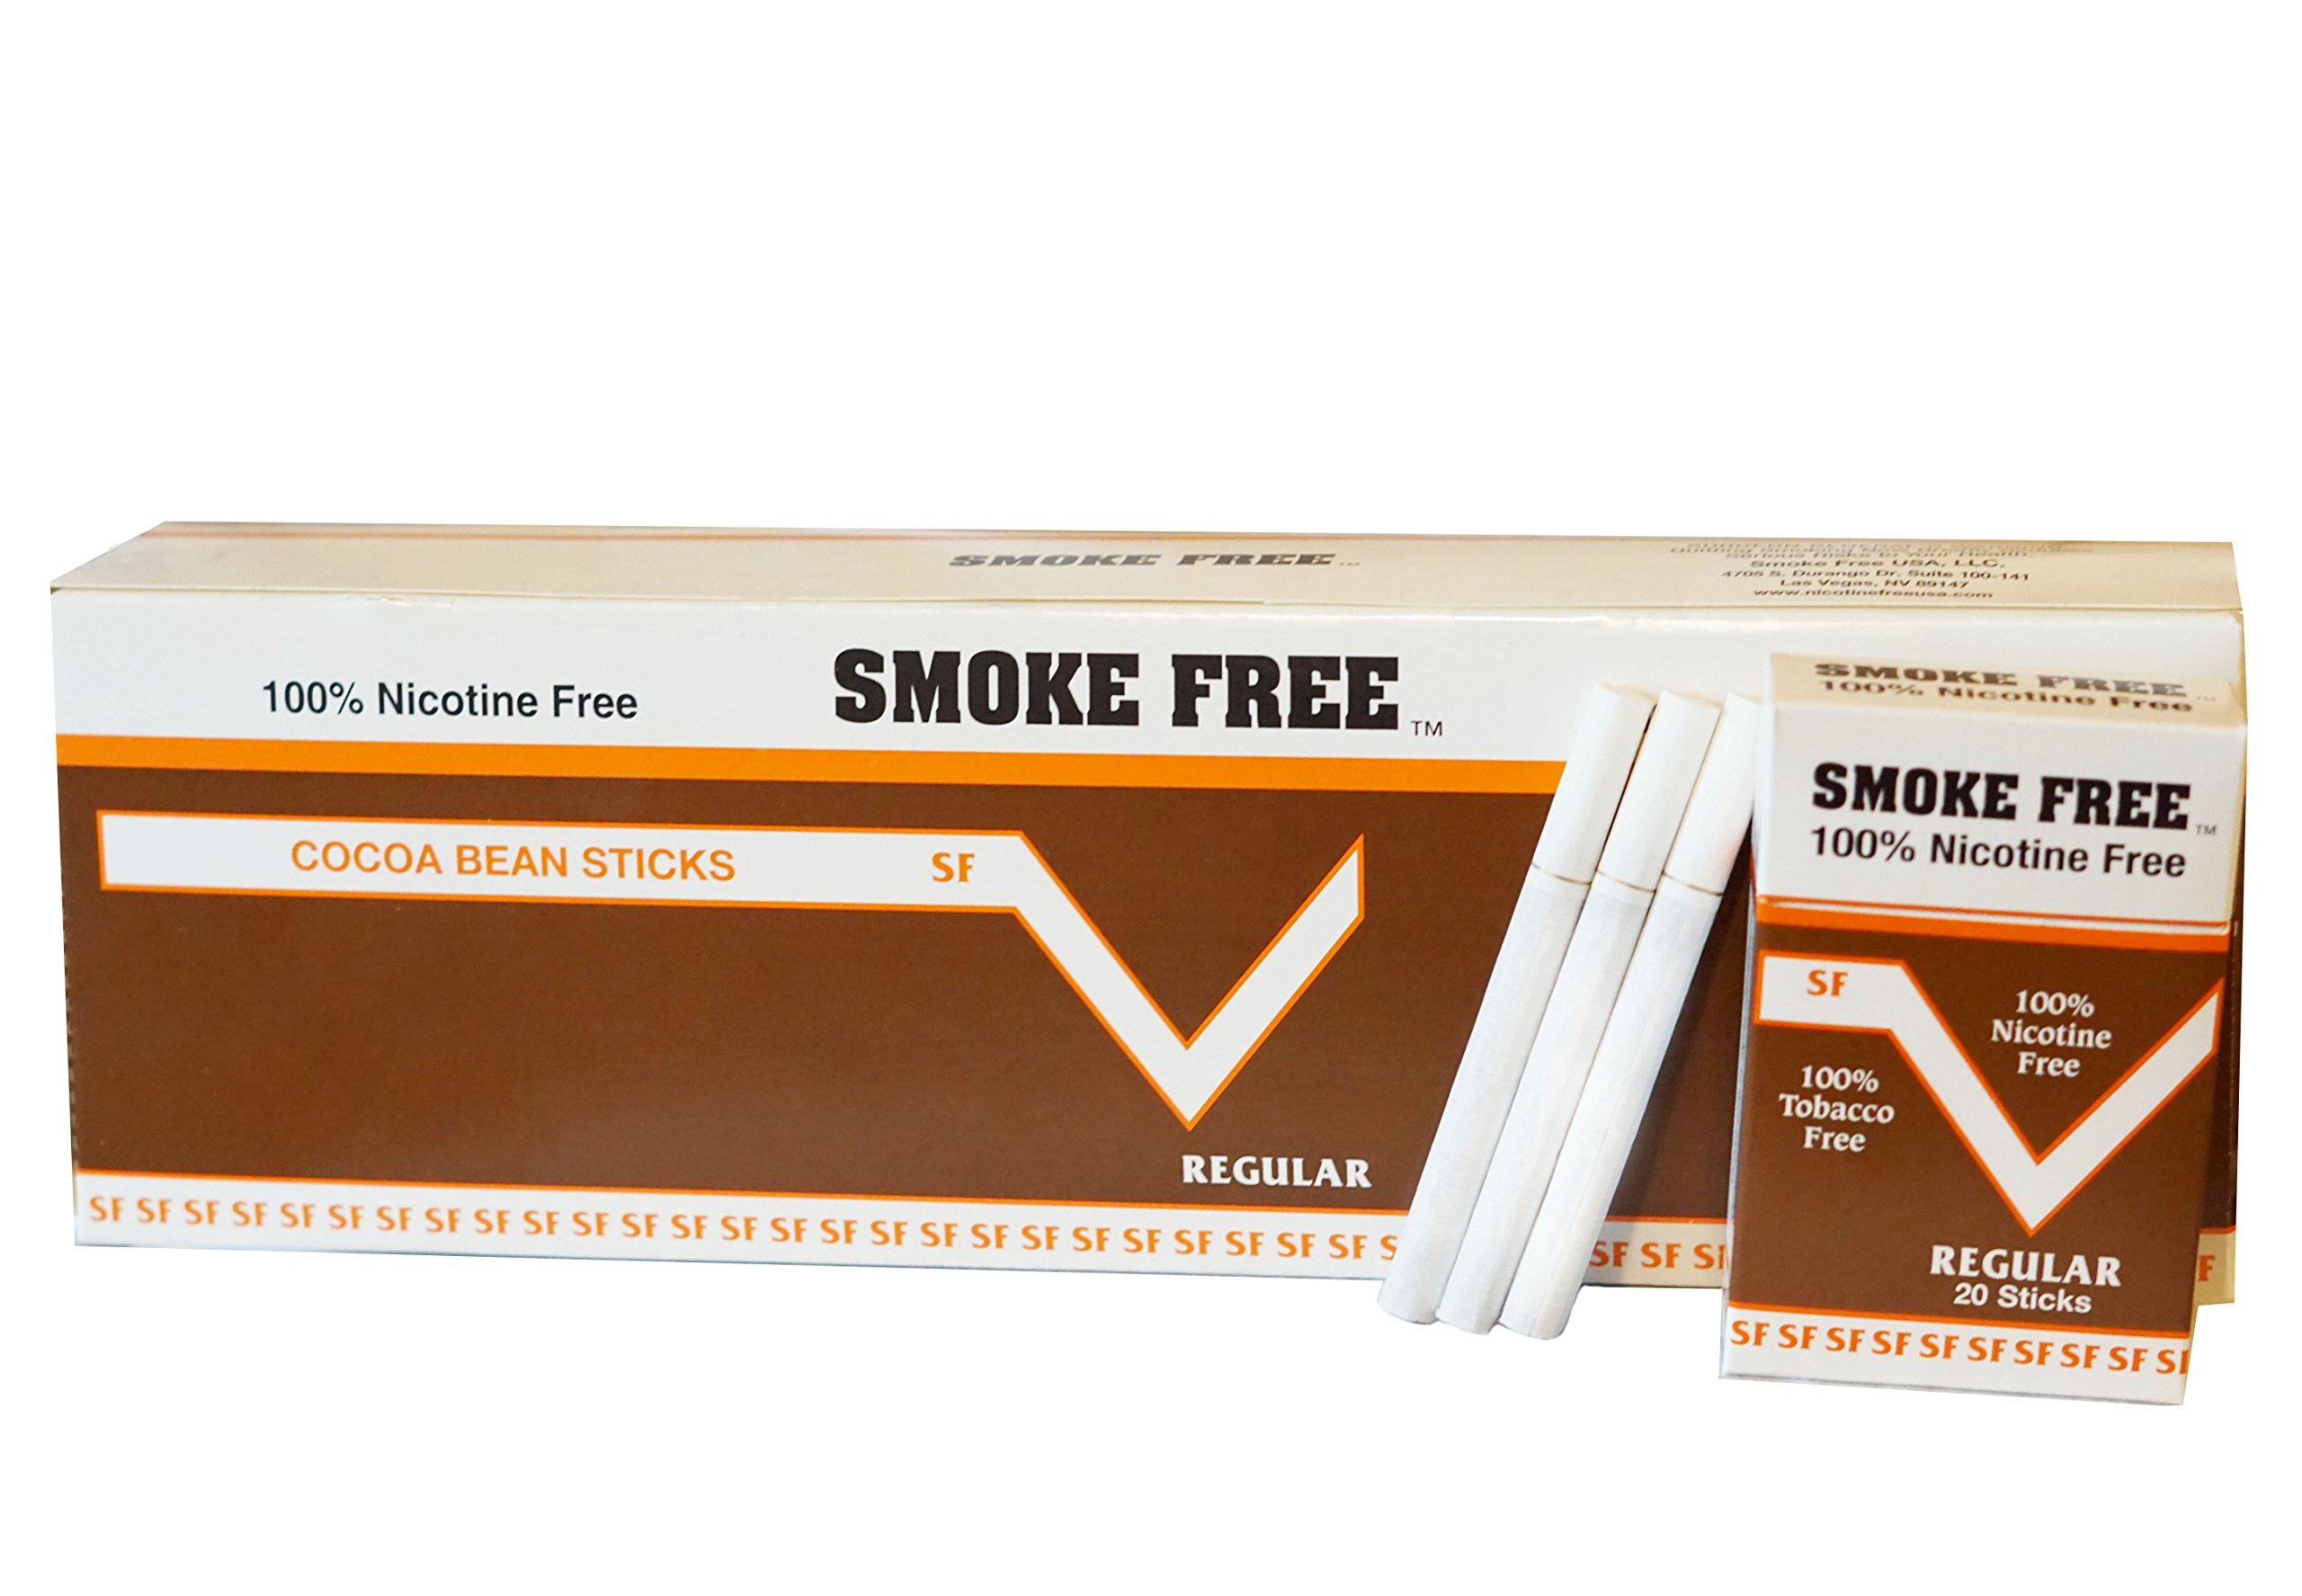 Carton 10 Packs Made in USA Since 1998 100% Nicotine Free(Cocoa Bean Sticks) Regular Flavor by SMOKE FREE